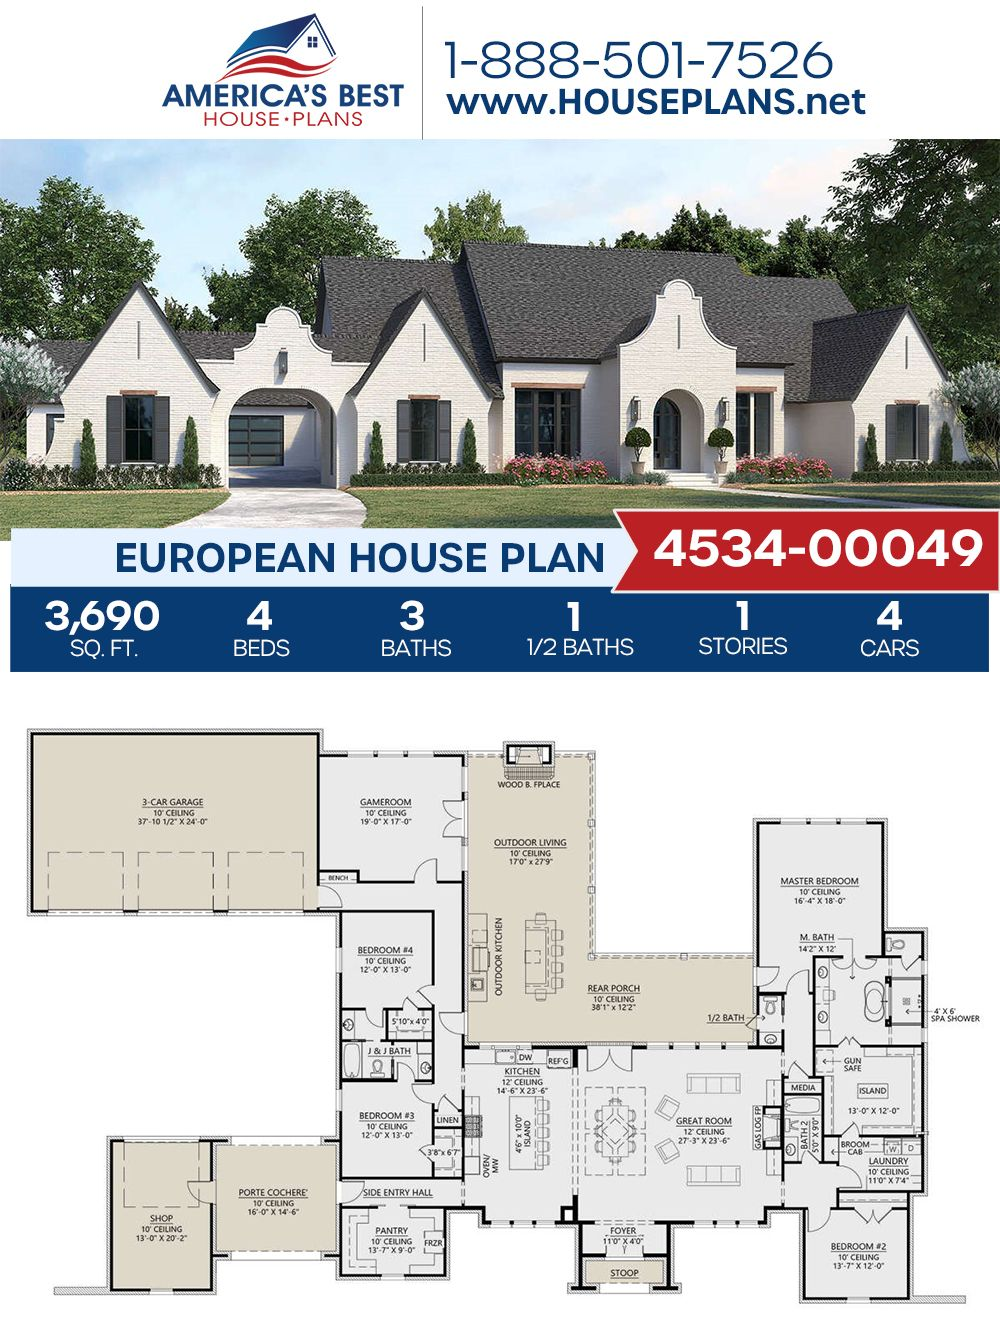 House Plan 4534 00049 European Plan 3 690 Square Feet 4 Bedrooms 3 5 Bathrooms French Country House Plans New House Plans Southern House Plans